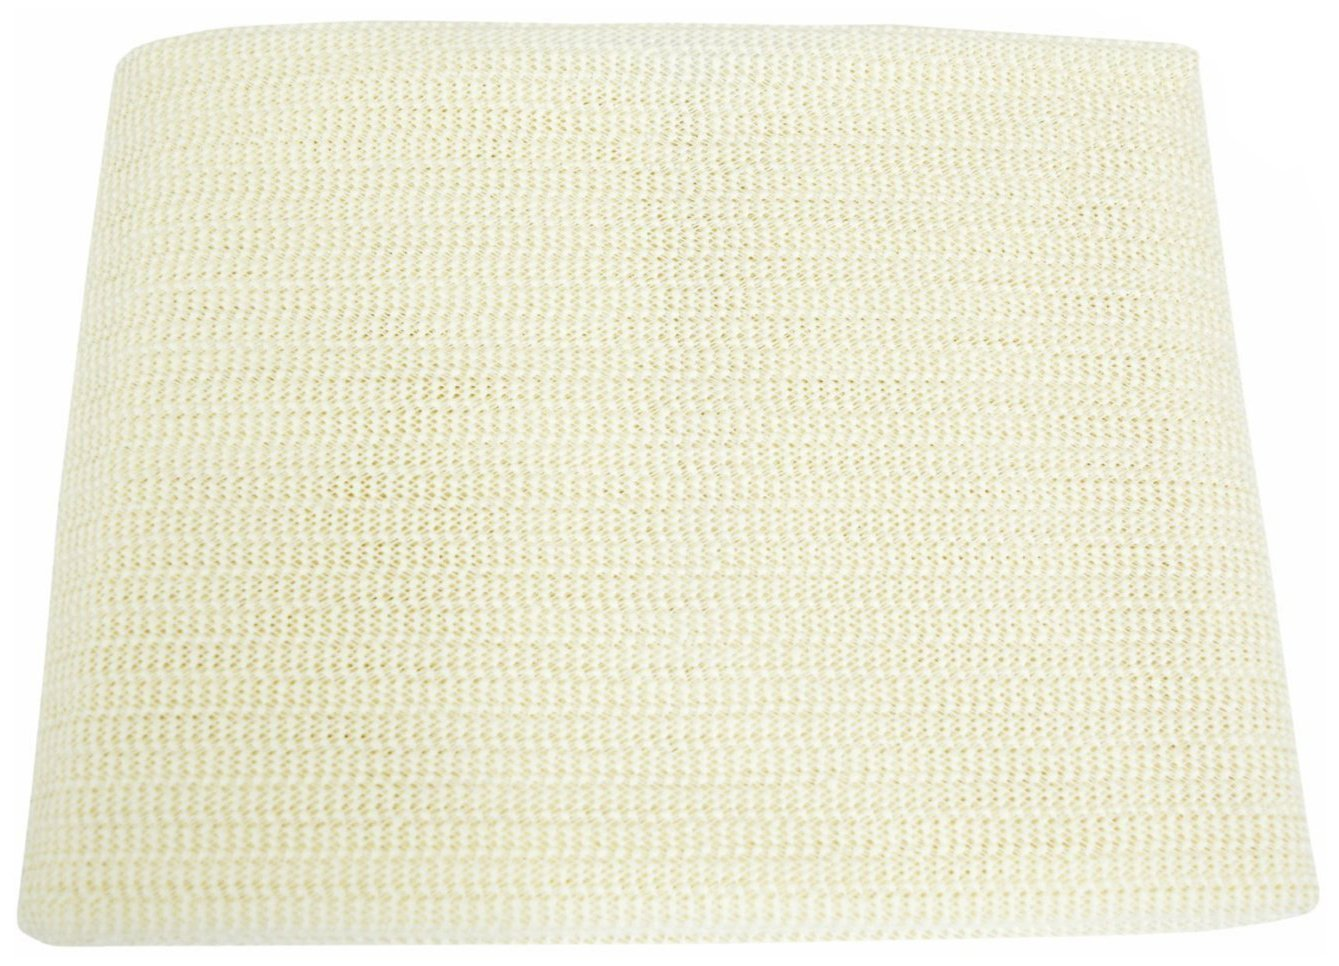 TRU Lite Bedding Non Slip Mattress Pad - Grip Pad Locks in Place - Non Slip Mat fits Platform or Futon Mattresses - Queen Size - Rug Gripper for 5' x 7' Rug